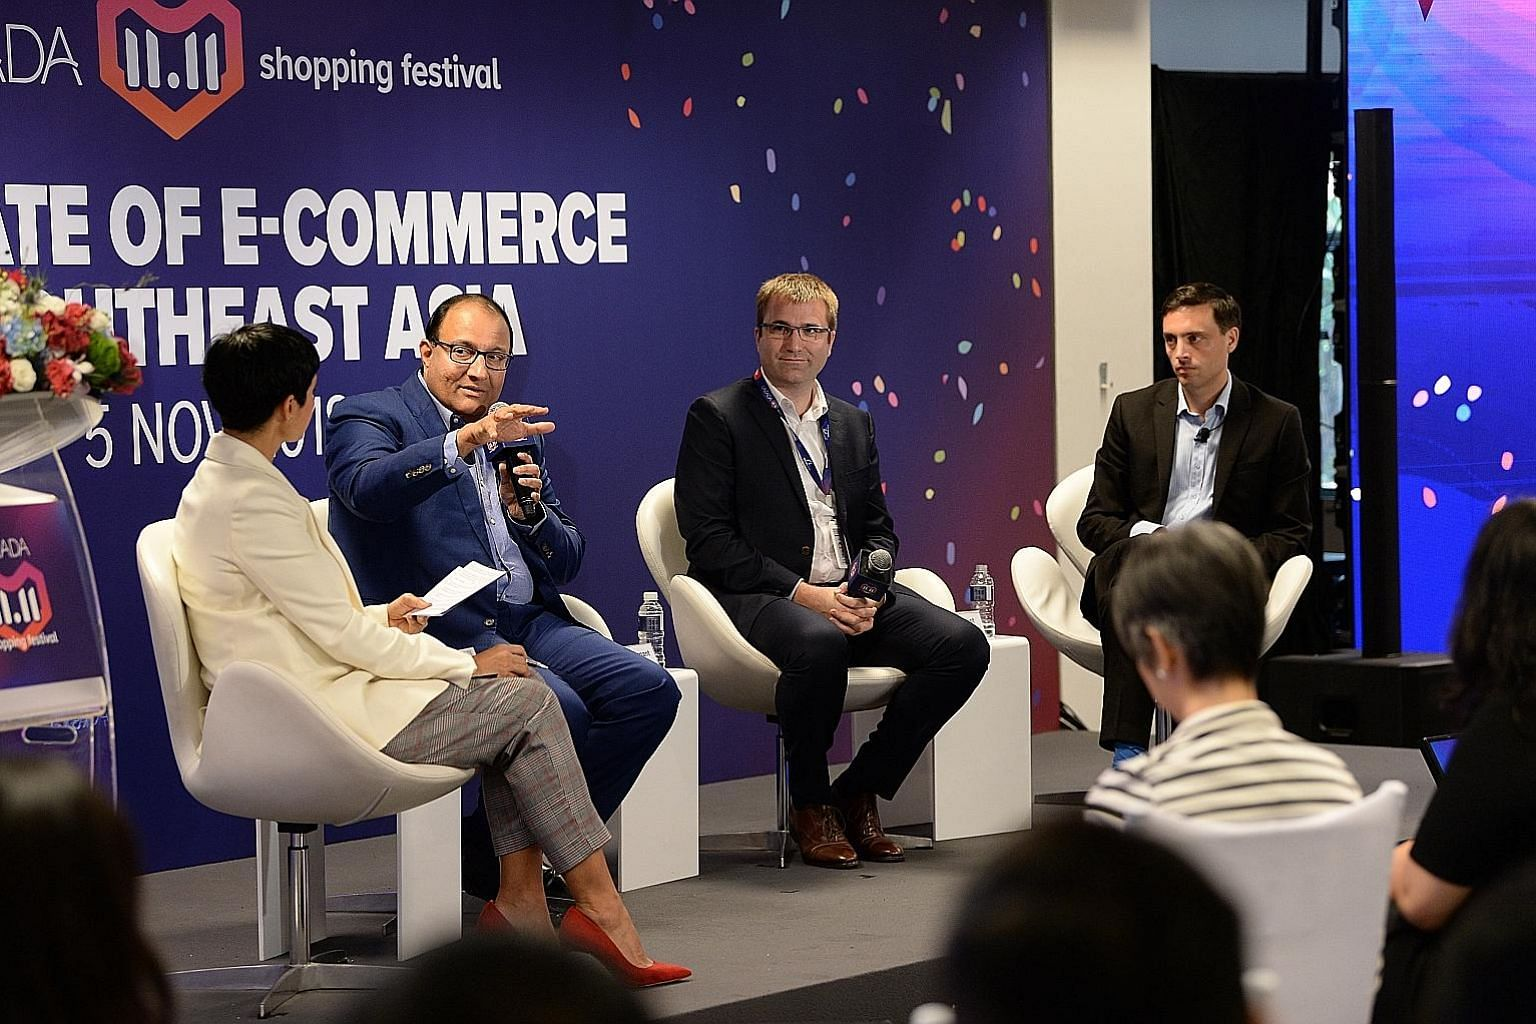 Communications and Information Minister S. Iswaran speaking at yesterday's panel discussion with (from left) media personality Anita Kapoor, Lazada Group executive president Pierre Poignant and Economist Intelligence Unit global chief economist Simon